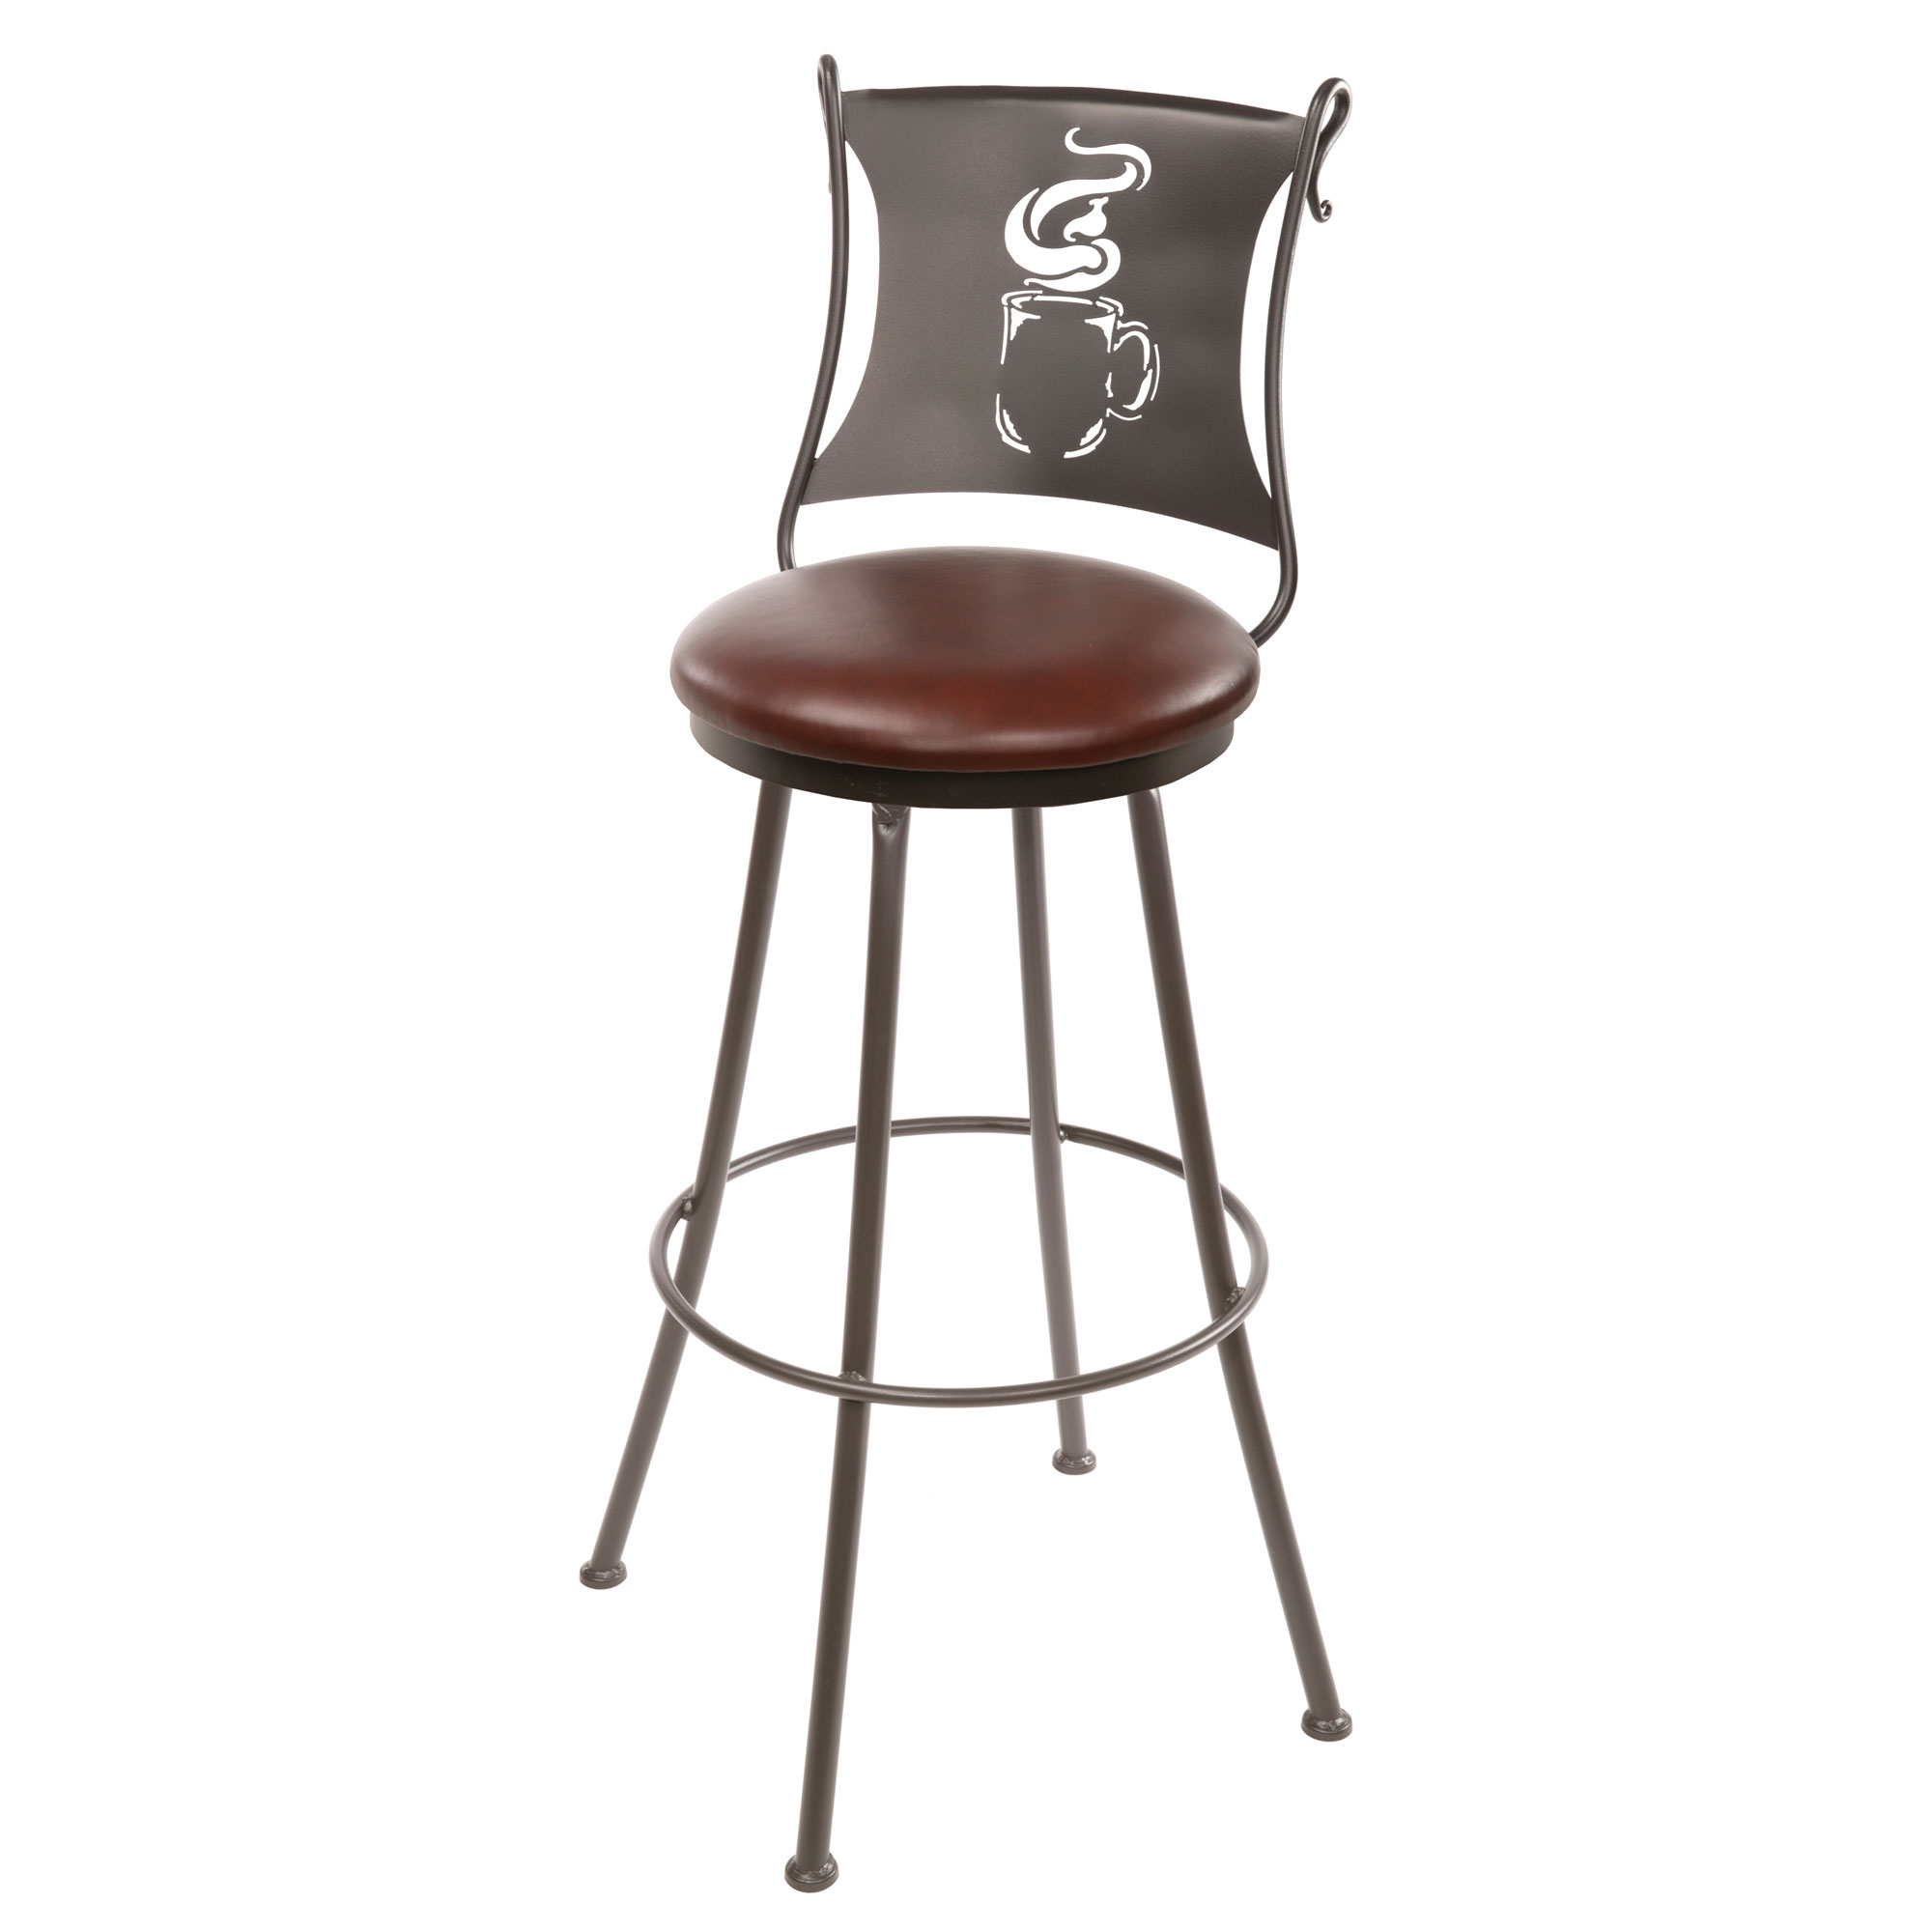 Wrought Iron Coffee Cup Counter Stool 25 In Seat Height